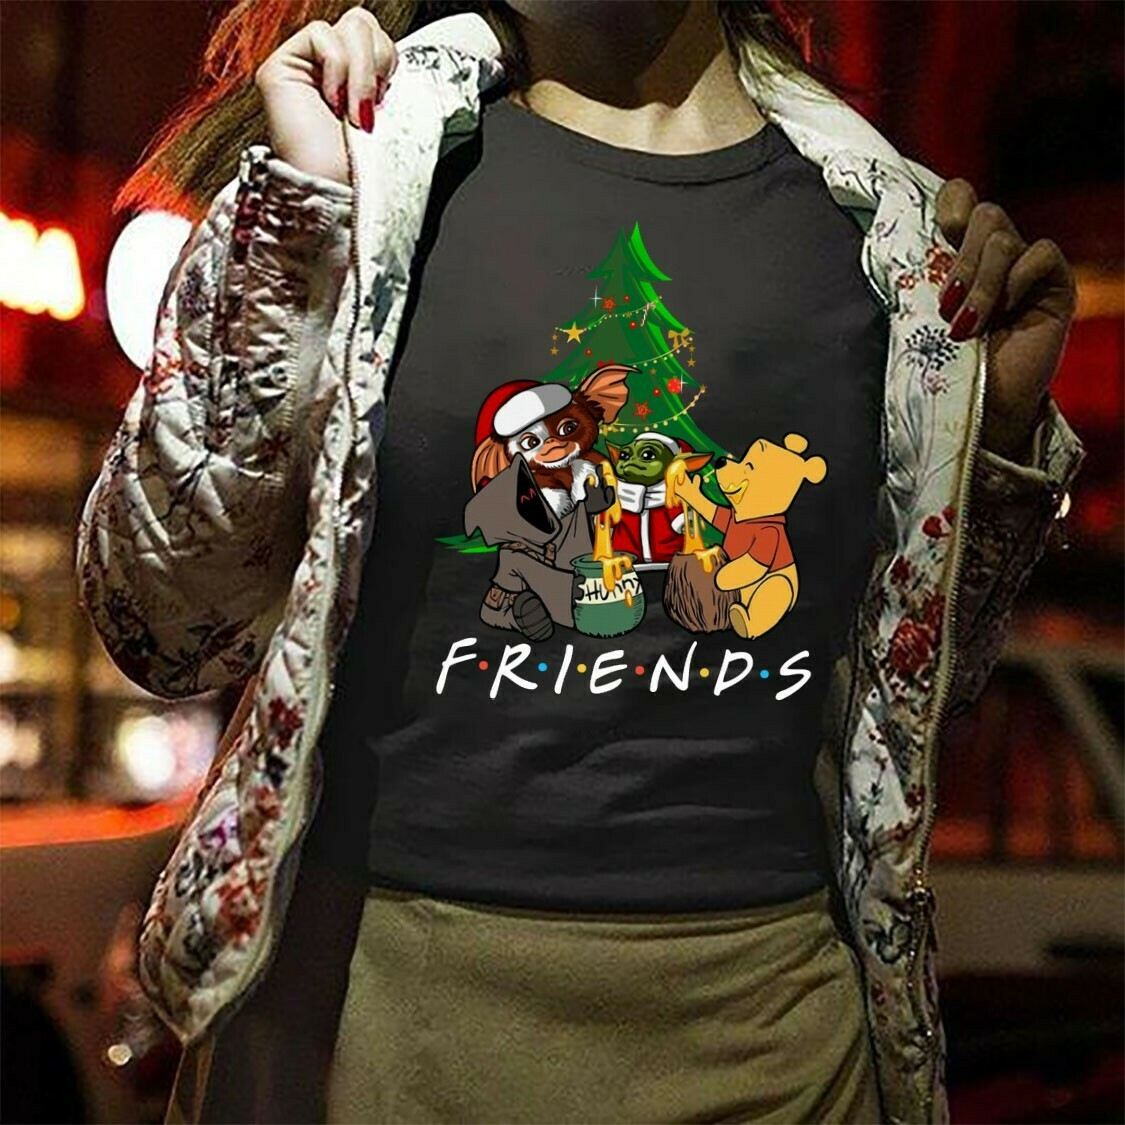 Disney Baby Stitch Yoda and Gizmo hugging tree christmas,Lilo Friends Star War Plus Festive Force Cover Baby Groot Funny Xmas party Shirt Long Sleeve Sweatshirt Hoodie Jolly Family Gifts